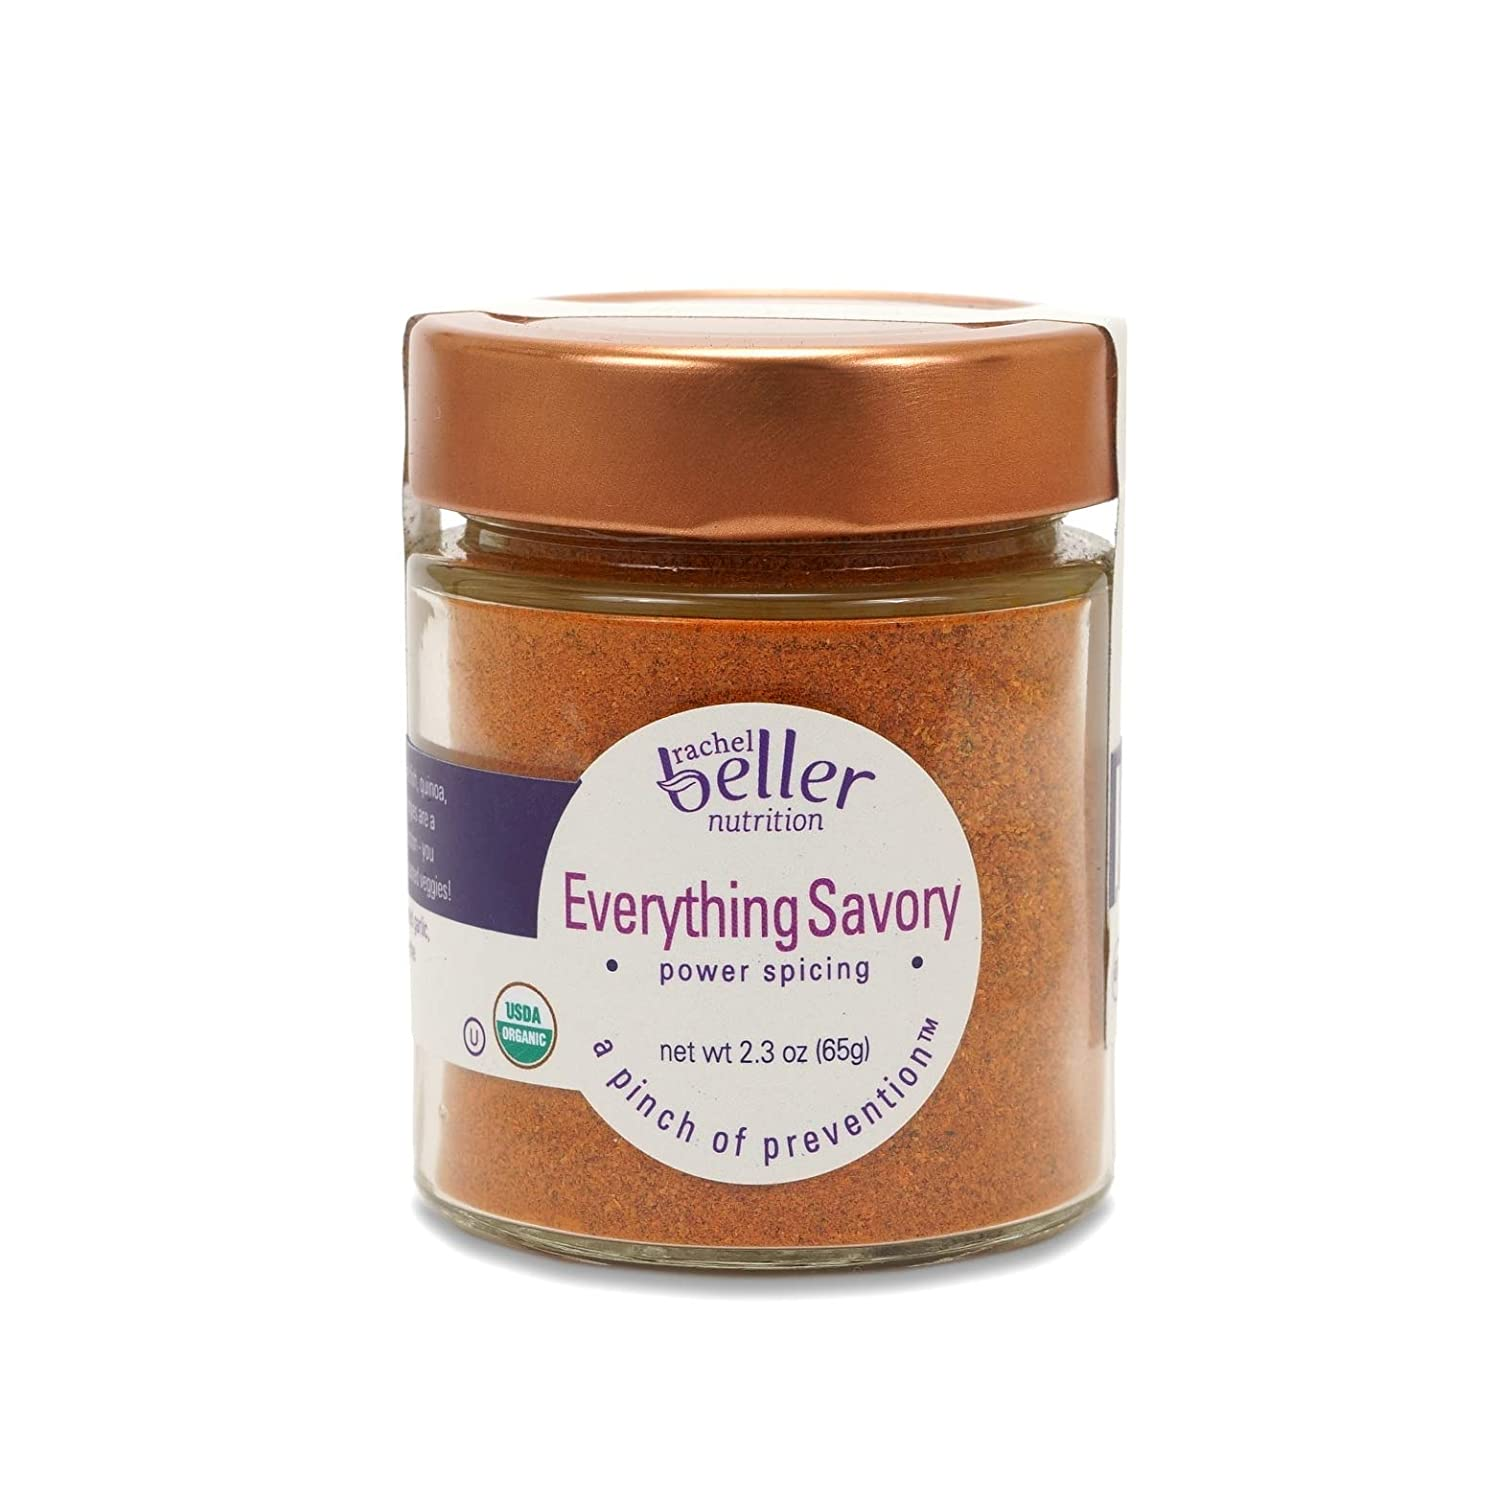 New life Rachel Beller Nutrition Power Spicing 2.3 EVERYTHING SAVORY - 4 years warranty